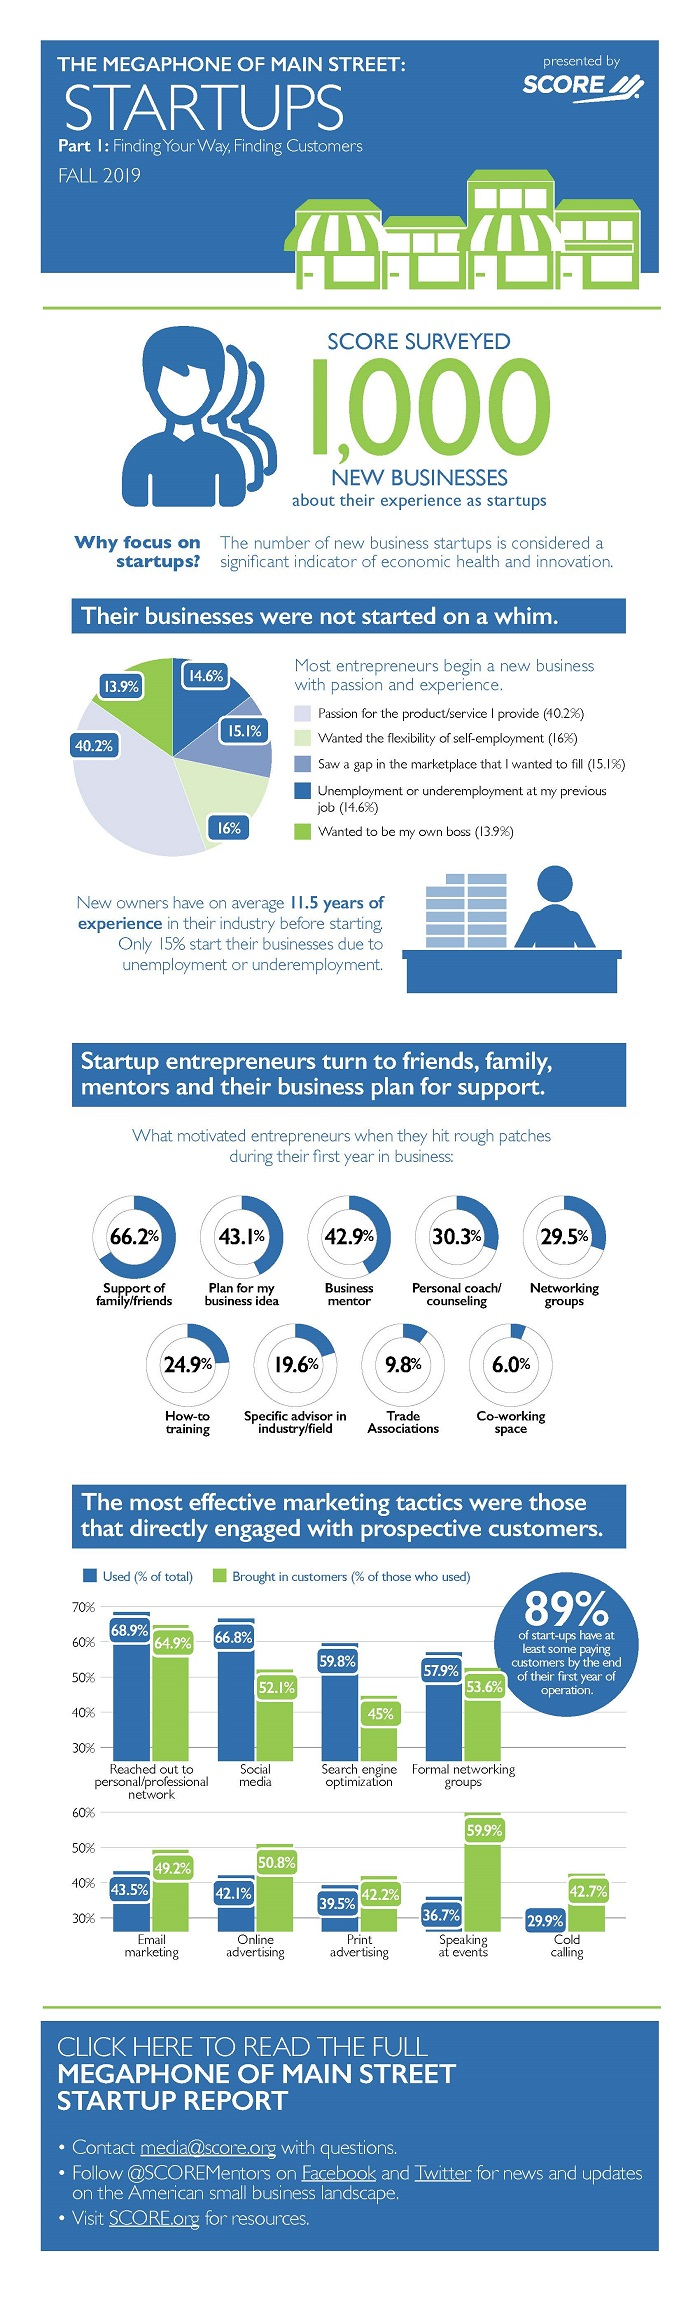 Here are the Latest Entrepreneur Statistics